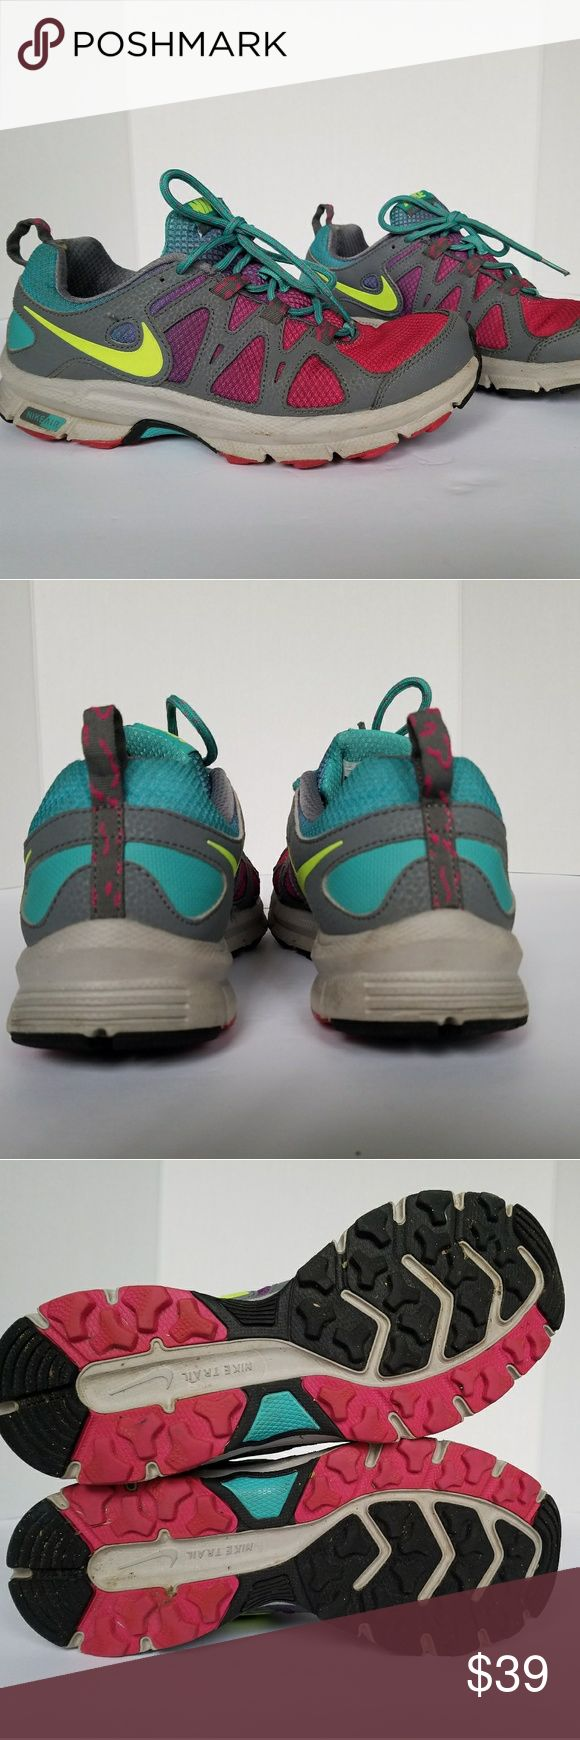 Nike Air Trail Sneakers Pink Purple Blue 8 GUC Very cool trail runners sneakers. Good condition, soles are in excellent condition. Some minimal blemishes pictured in last 4 pictures. Smoke and pet free. Nike Shoes Athletic Shoes